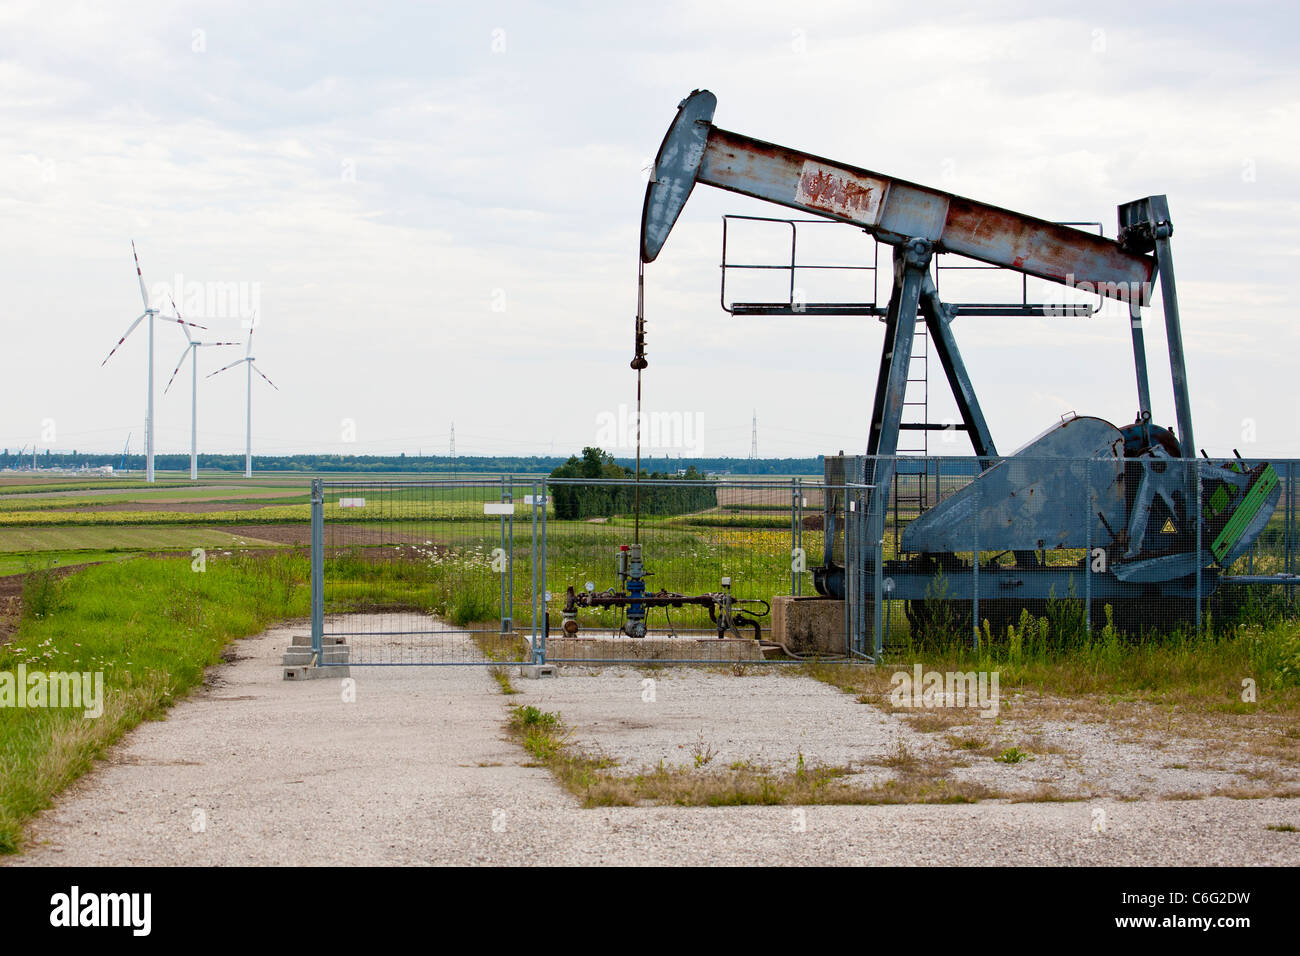 Crude oil pump with wind turbines in the background. - Stock Image